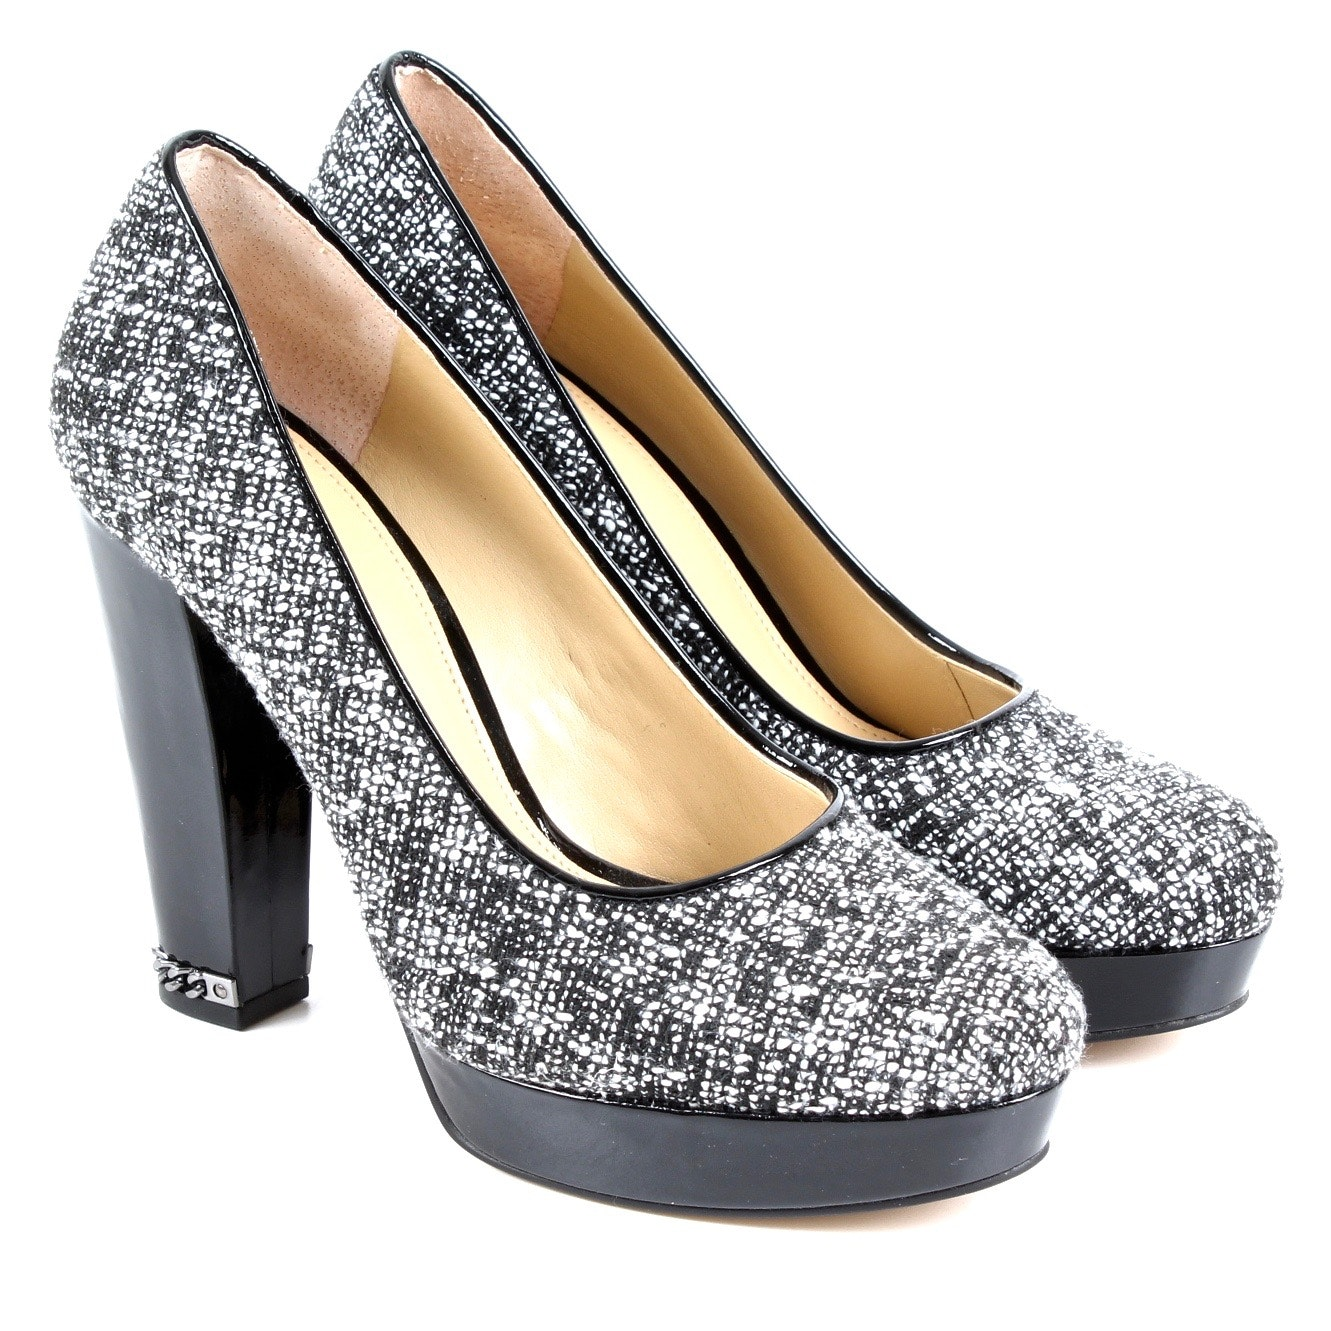 MICHAEL Michael Kors Tweed Sabrina Platform Pumps